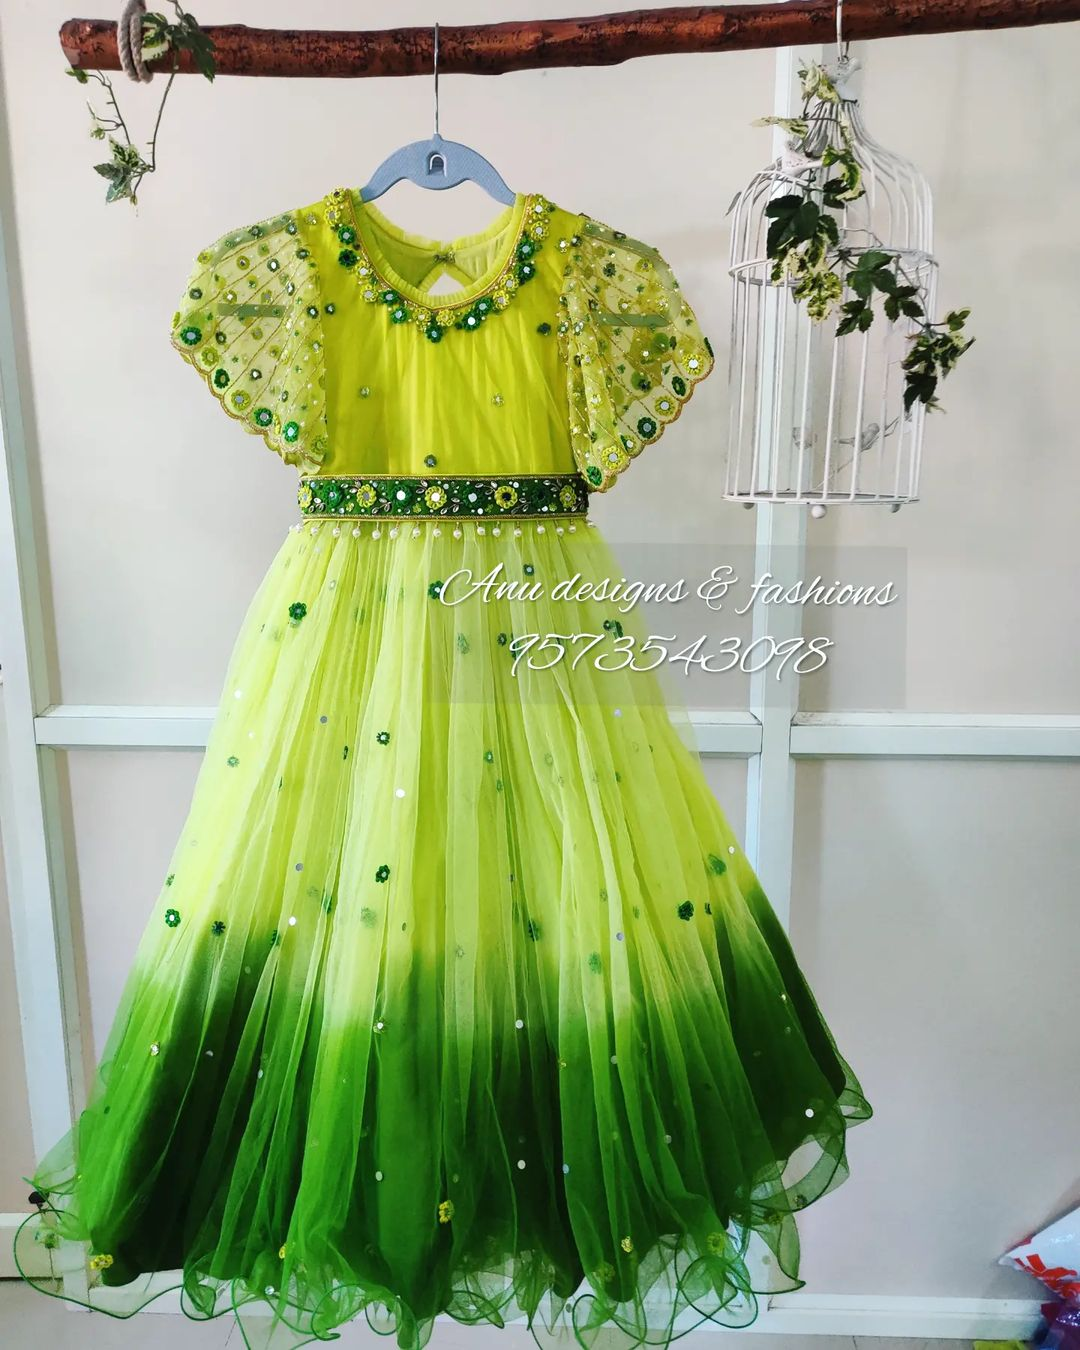 Stunning pista green and leaf green color combination kids frock with ruffle sleeves. Kids frock with bead and mirror hand embroidery work.  2021-10-02